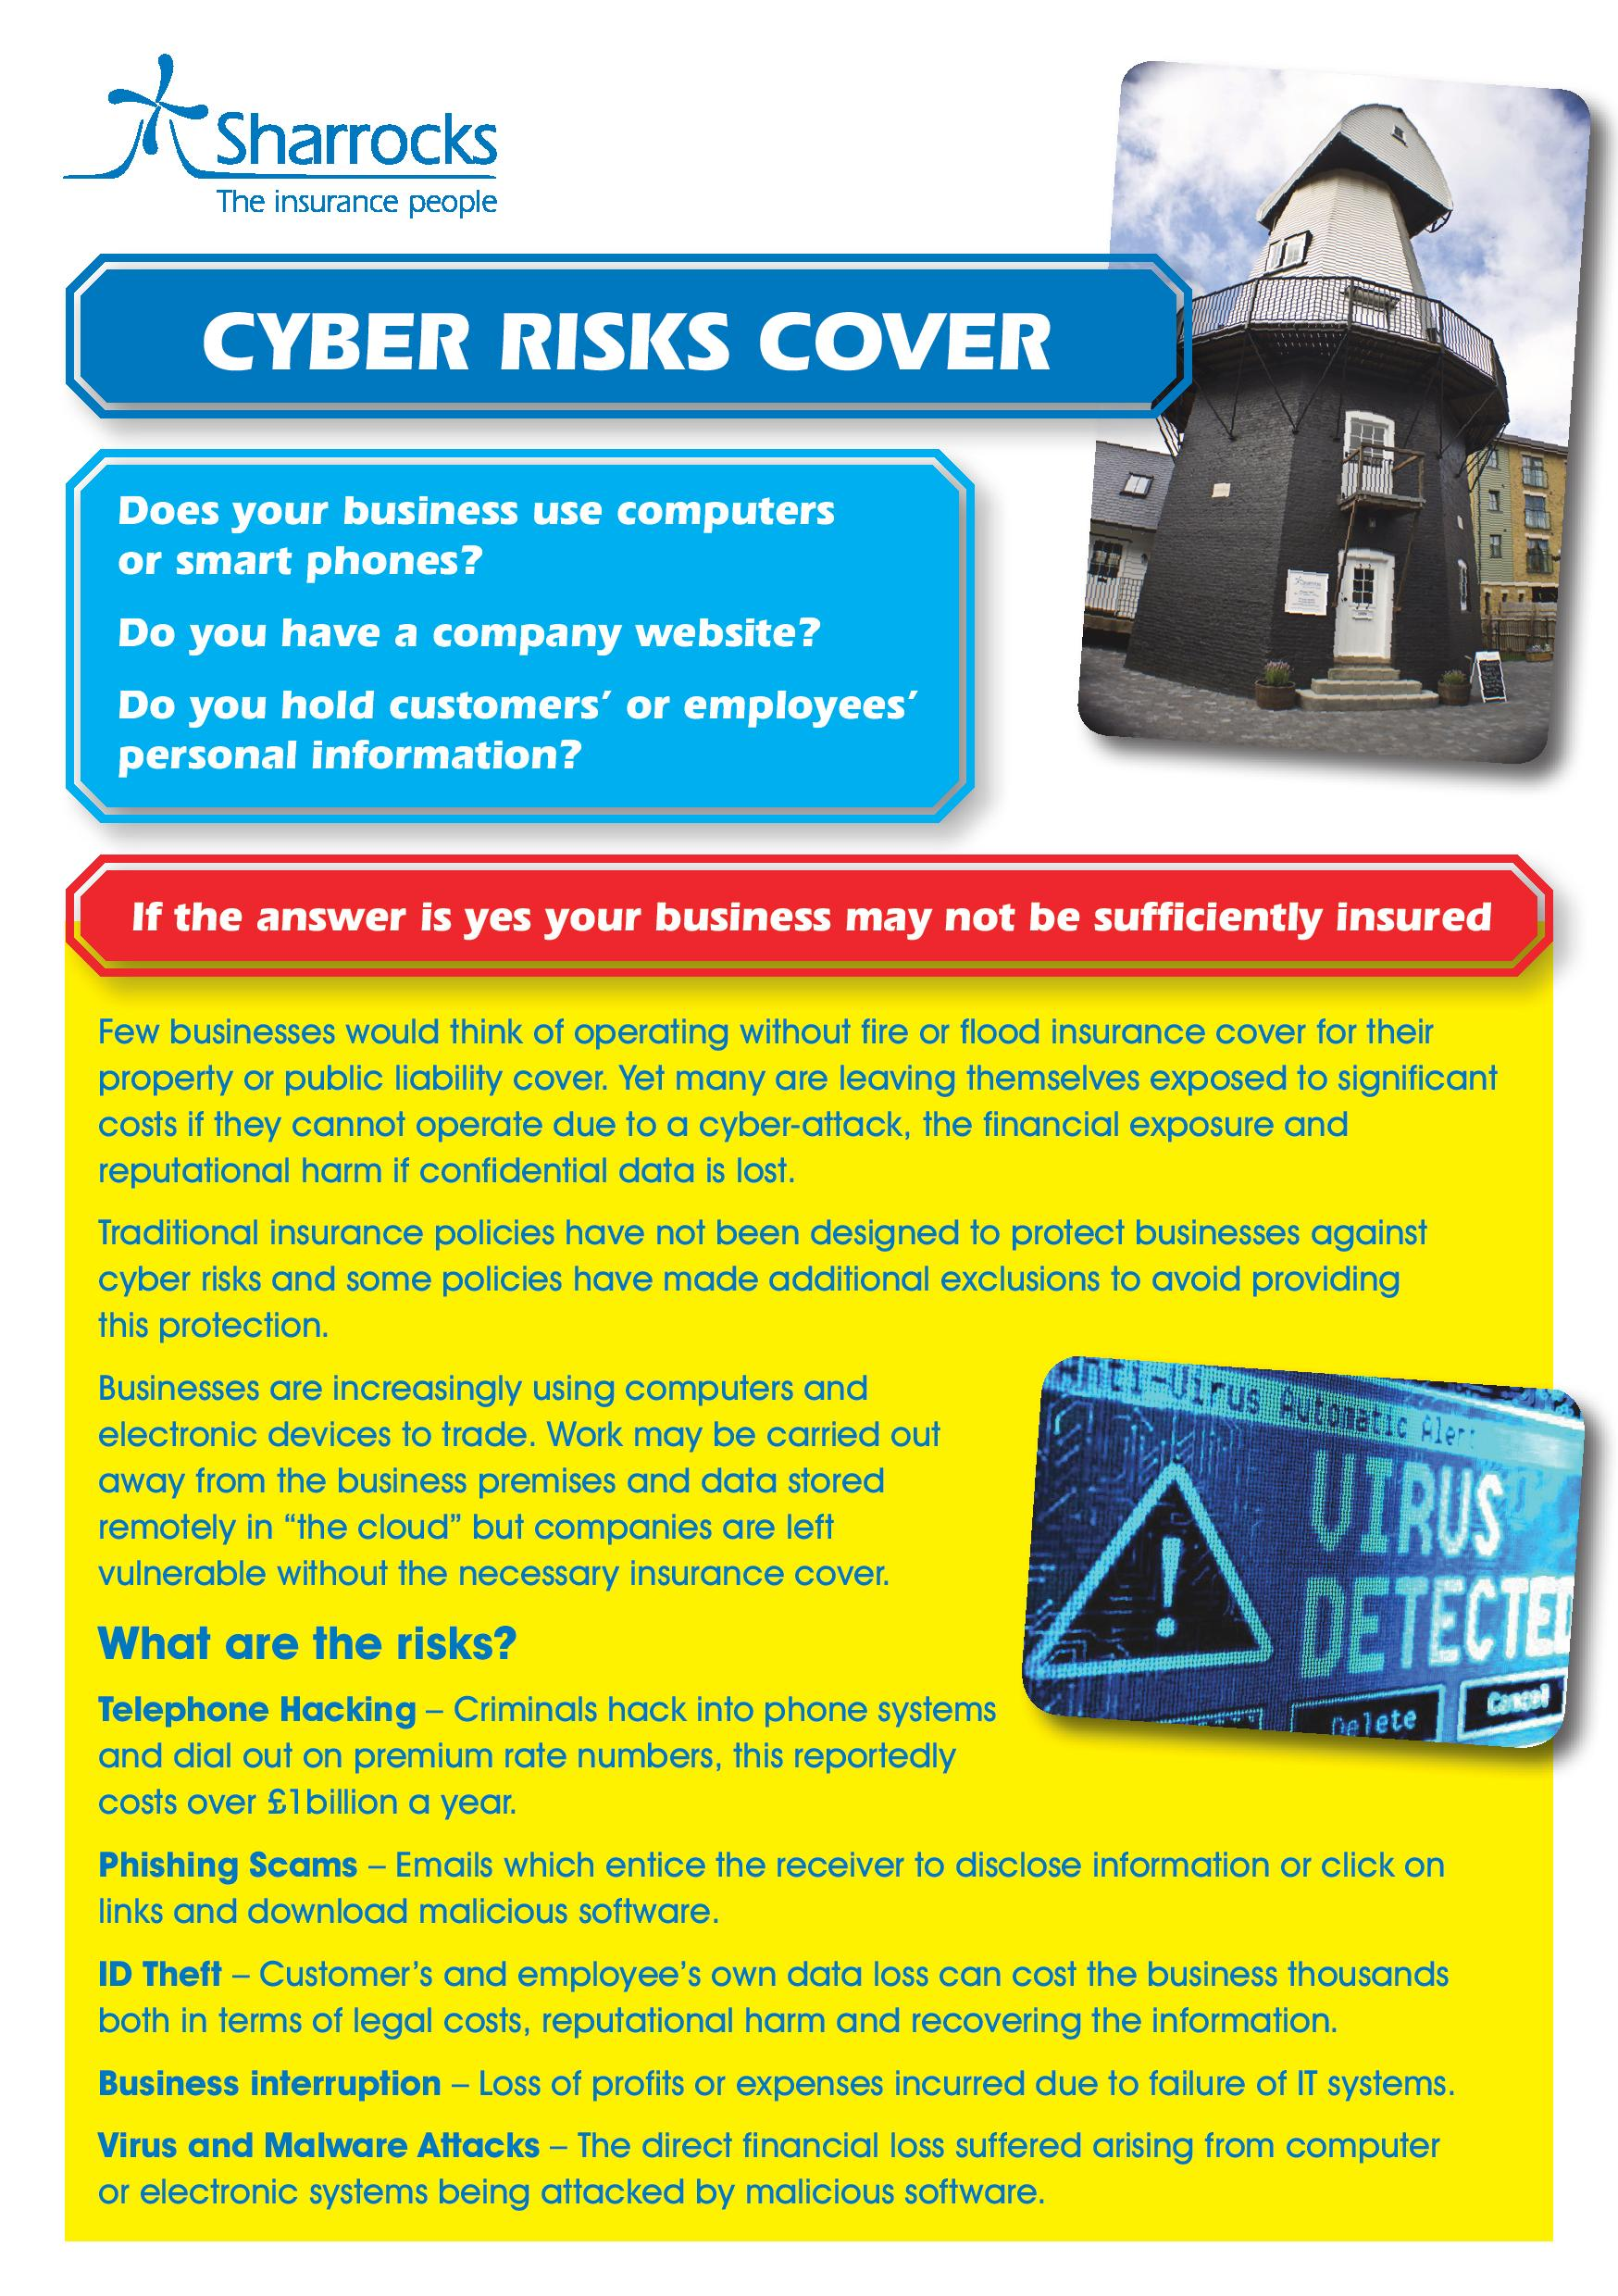 Sharrocks' Guide to Cyber Risks Cover page 1